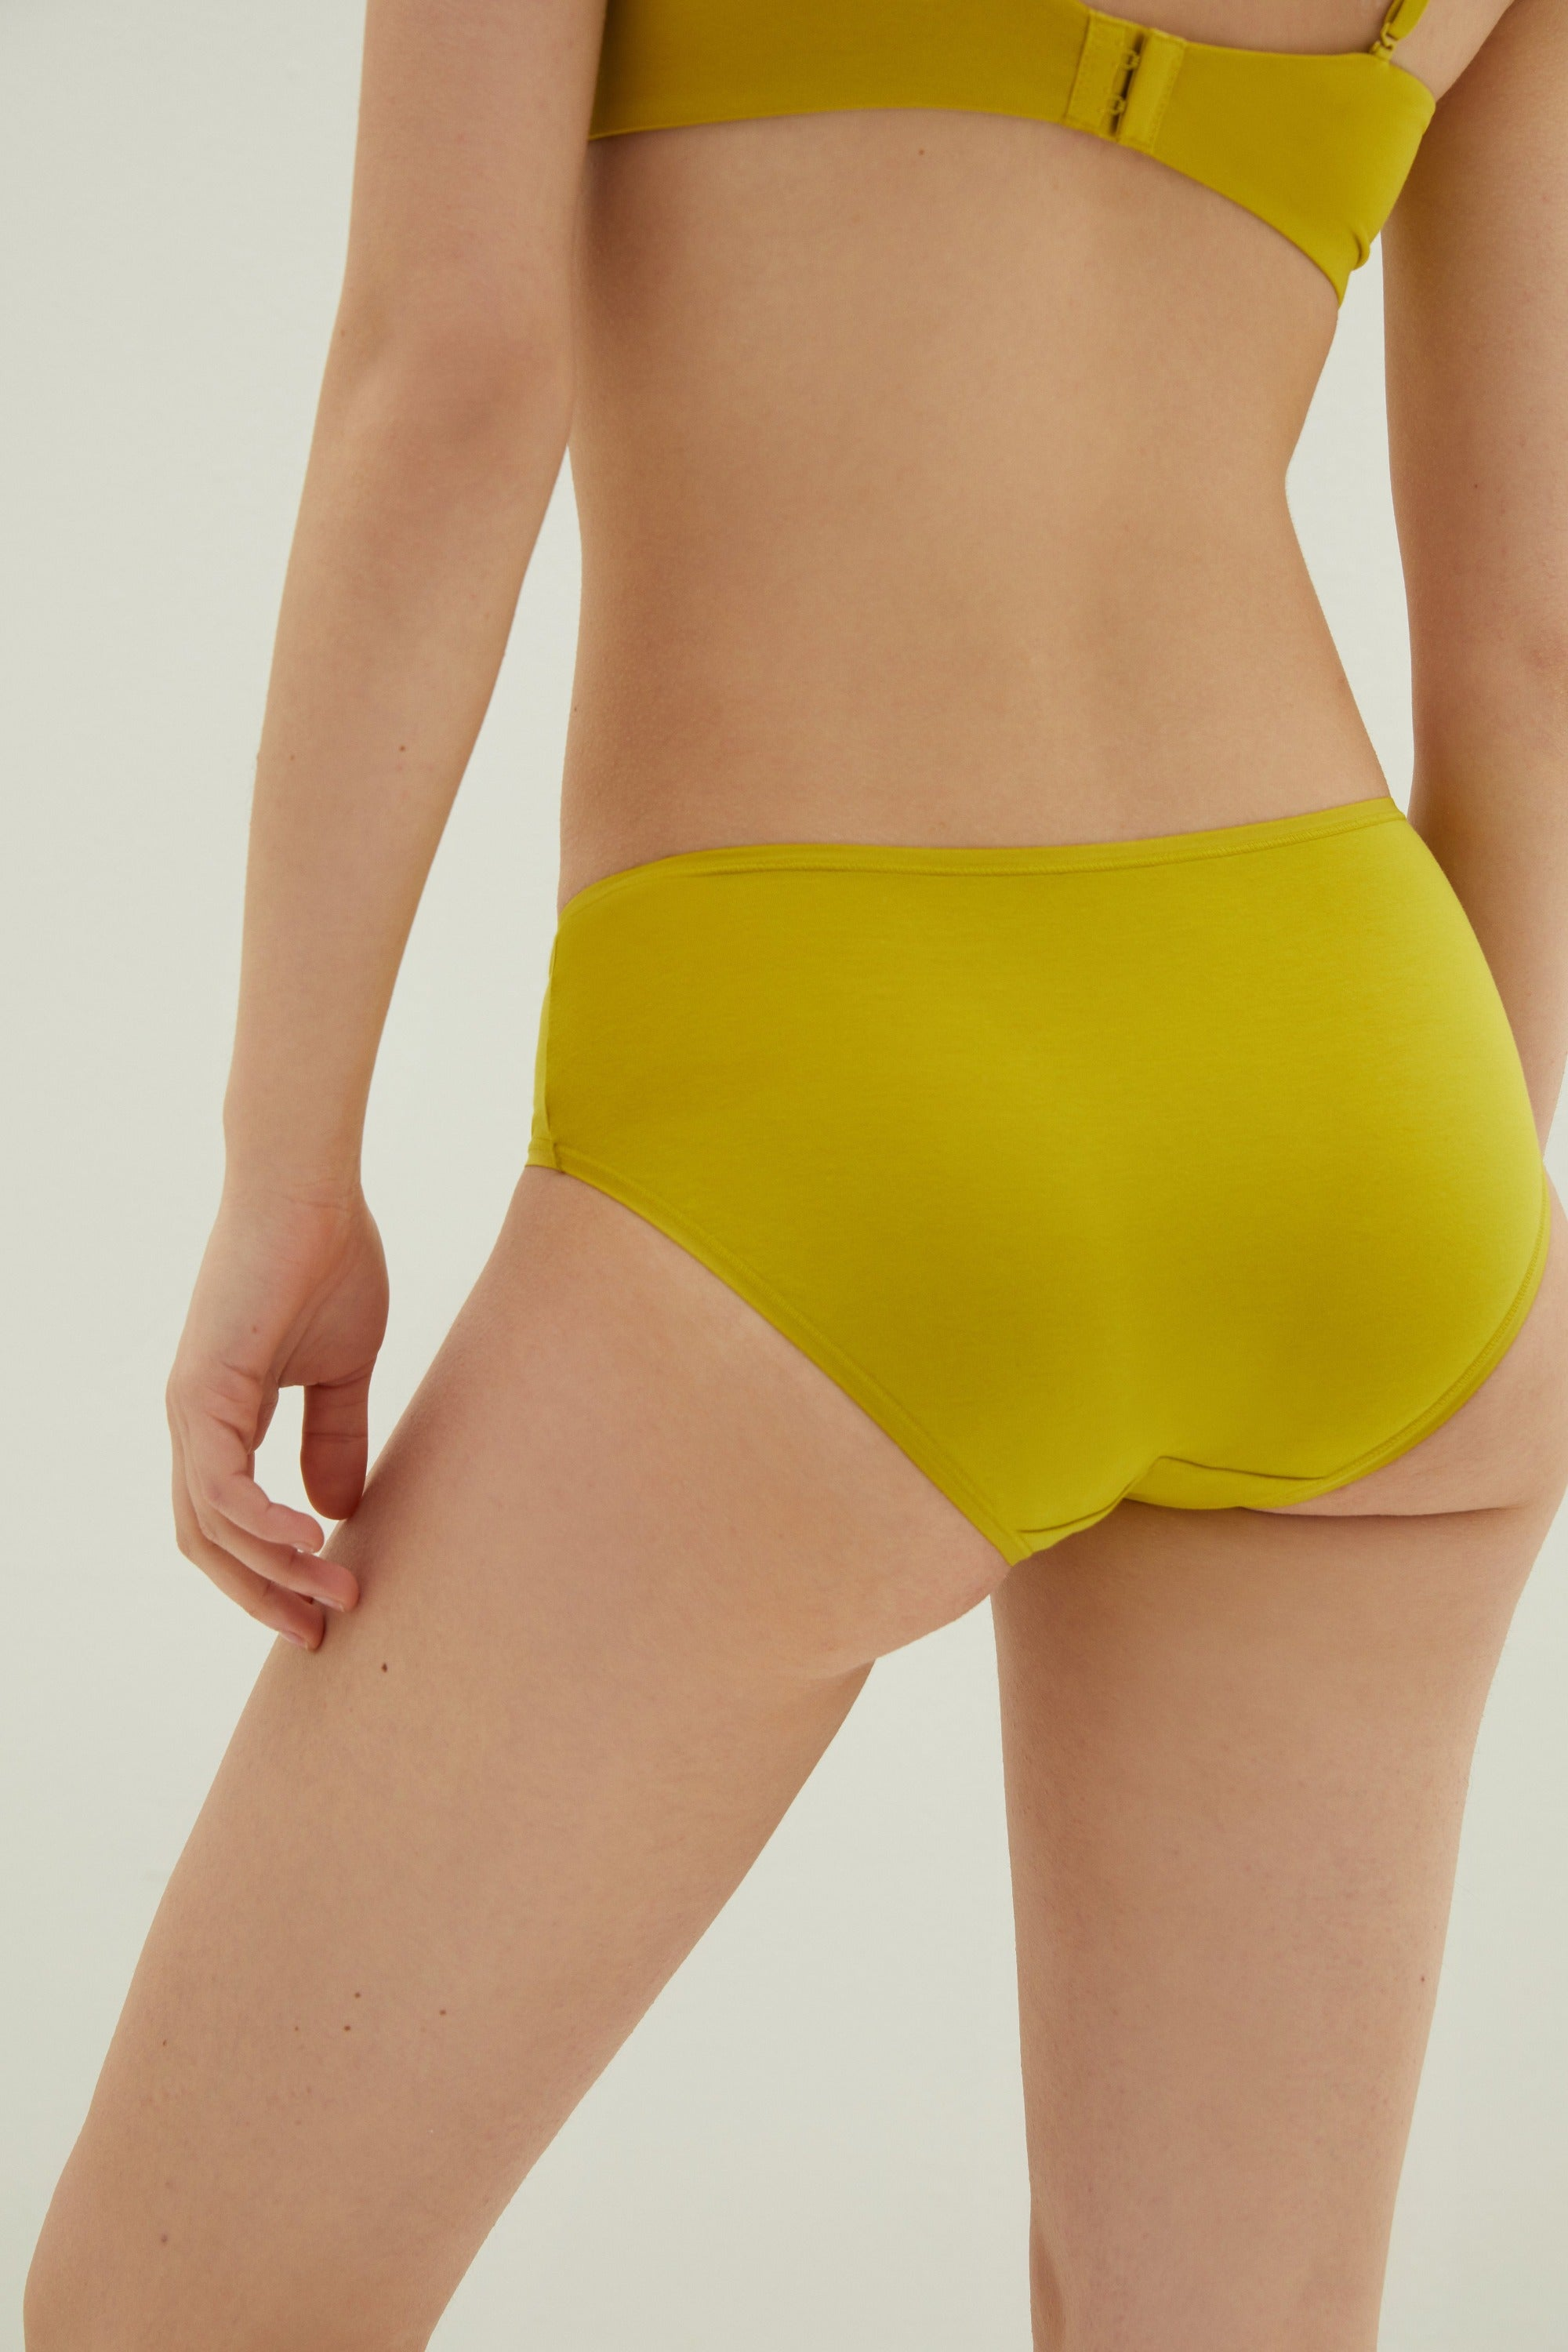 NEIWAI Classic Mid Waist Modal Briefs in Cress Green, 3 Pack. Moderate Coverage